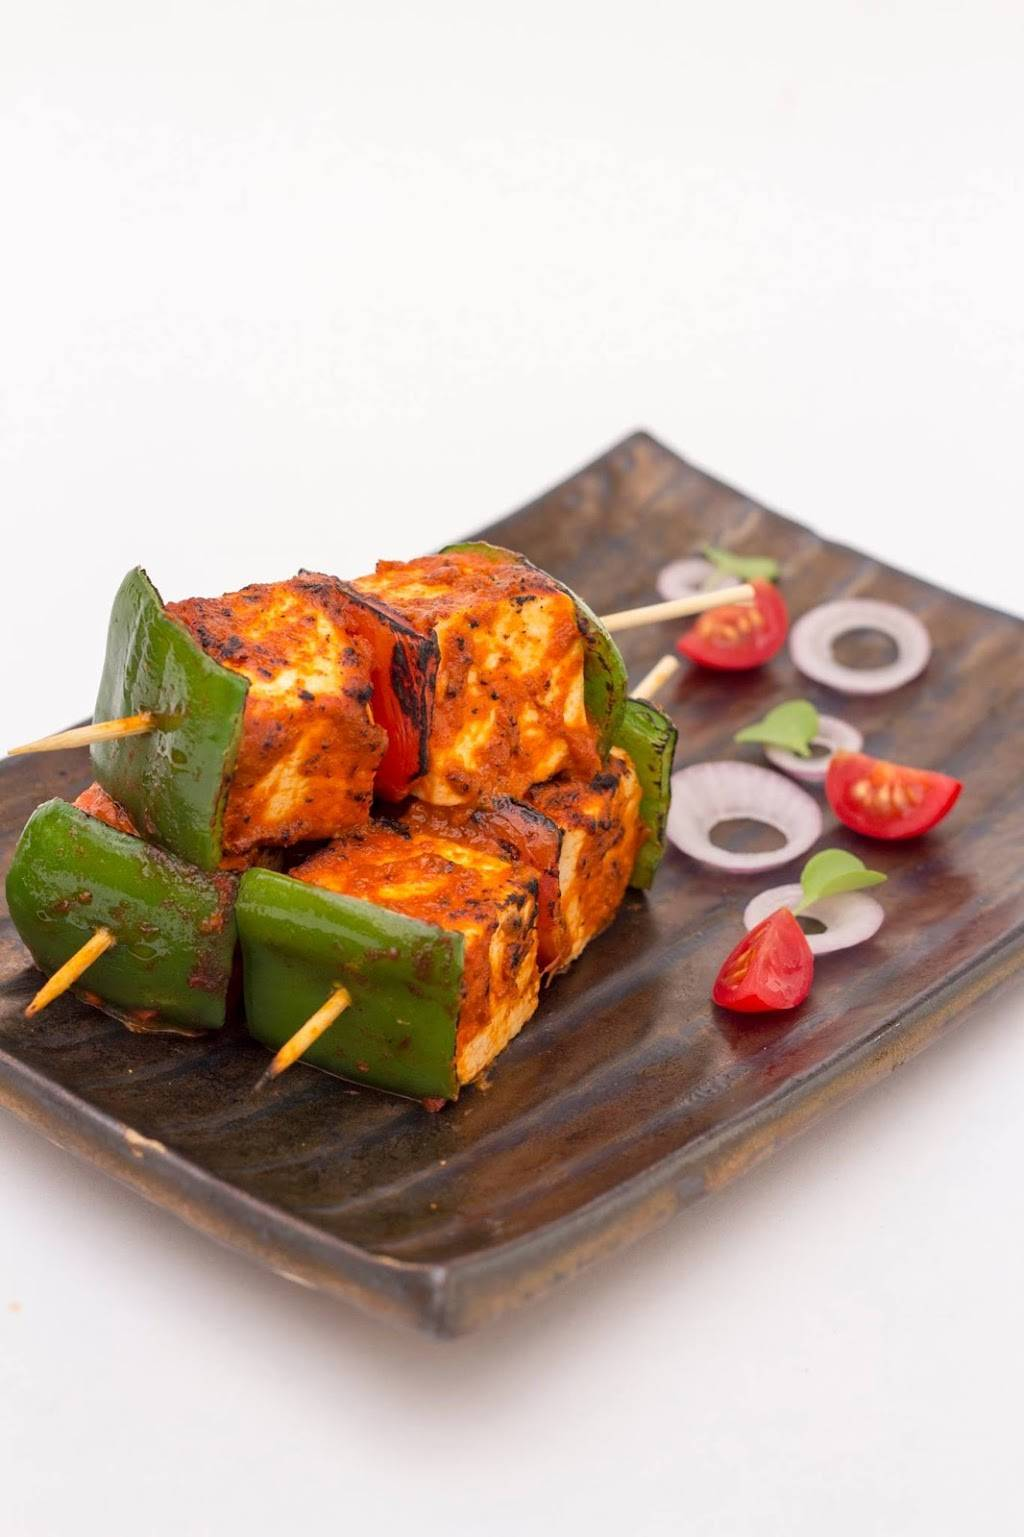 TYC by Sanjeev Kapoor - Express | meal takeaway | 320 Main St N, Brampton, ON L6V 4A3, Canada | 9054518921 OR +1 905-451-8921